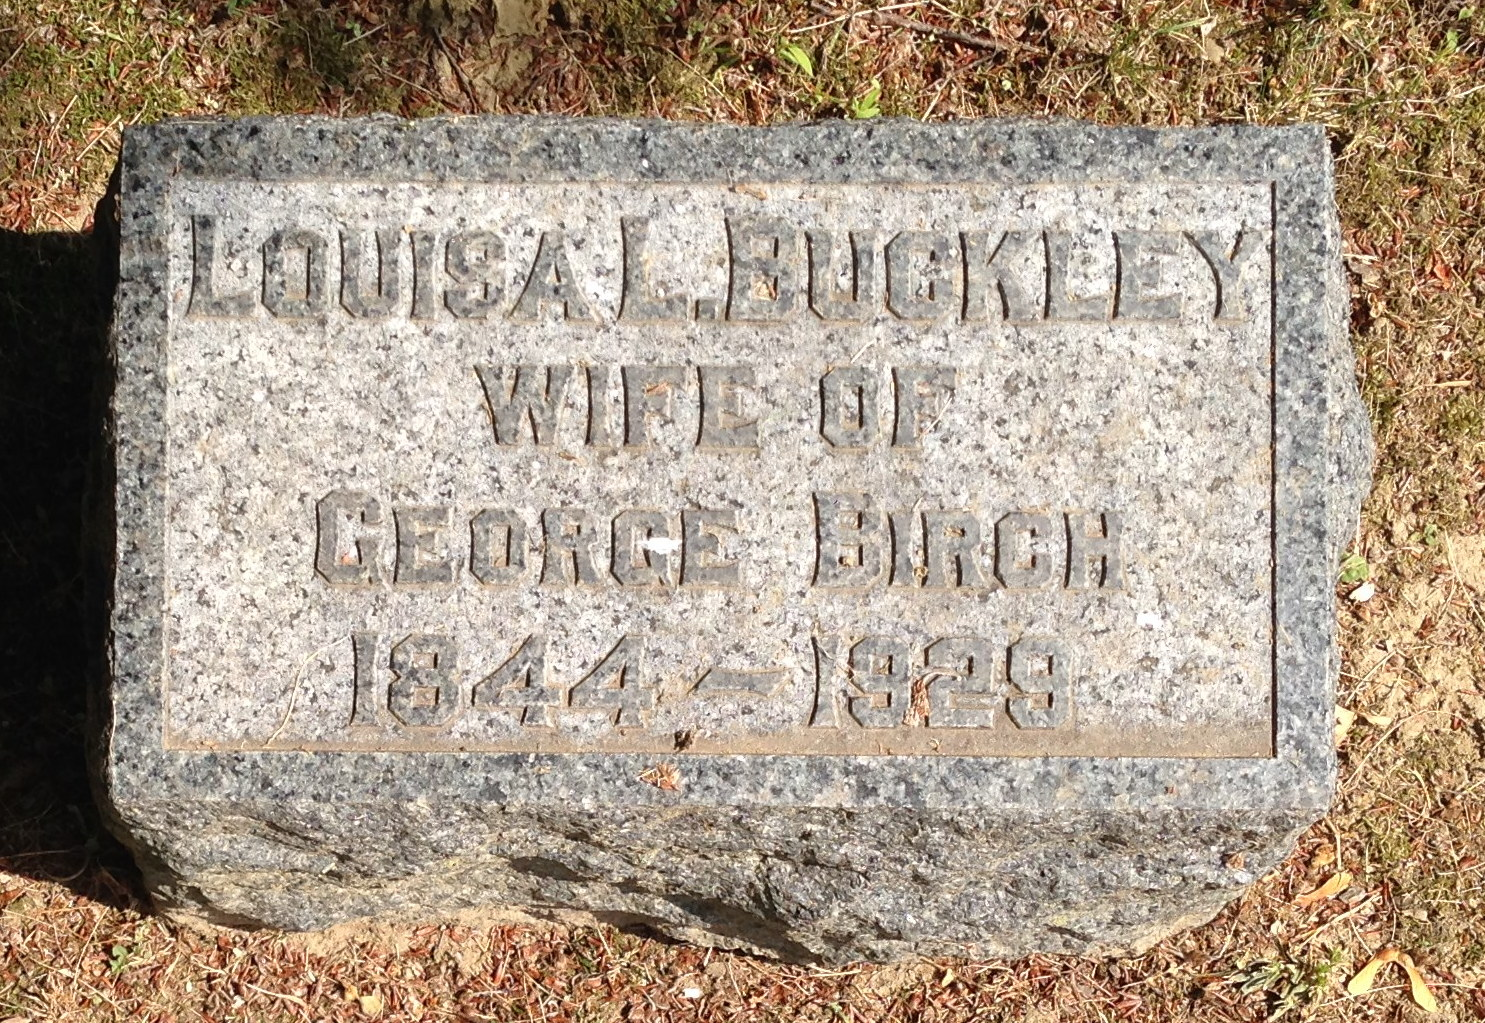 Louise <i>Buckley</i> Birch